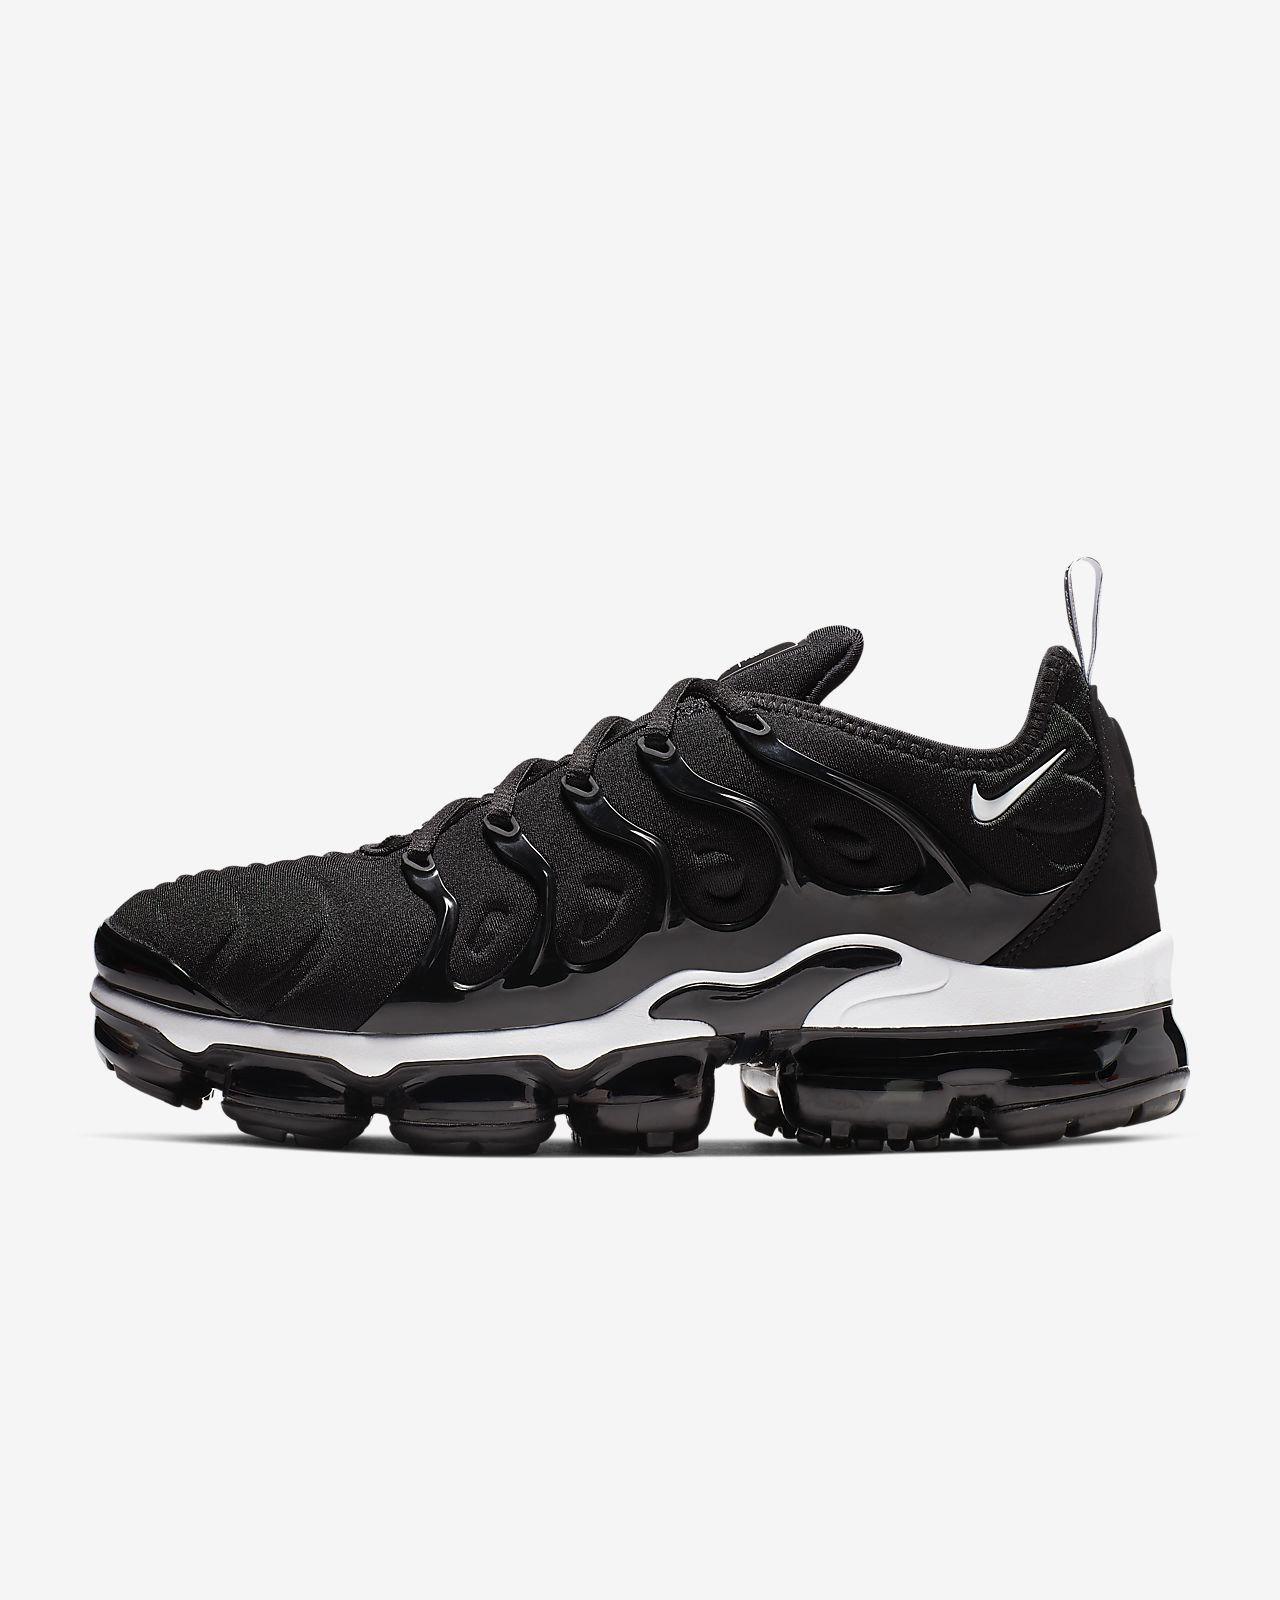 best website 12ab3 7f607 ... Nike Air VaporMax Plus Zapatillas - Hombre